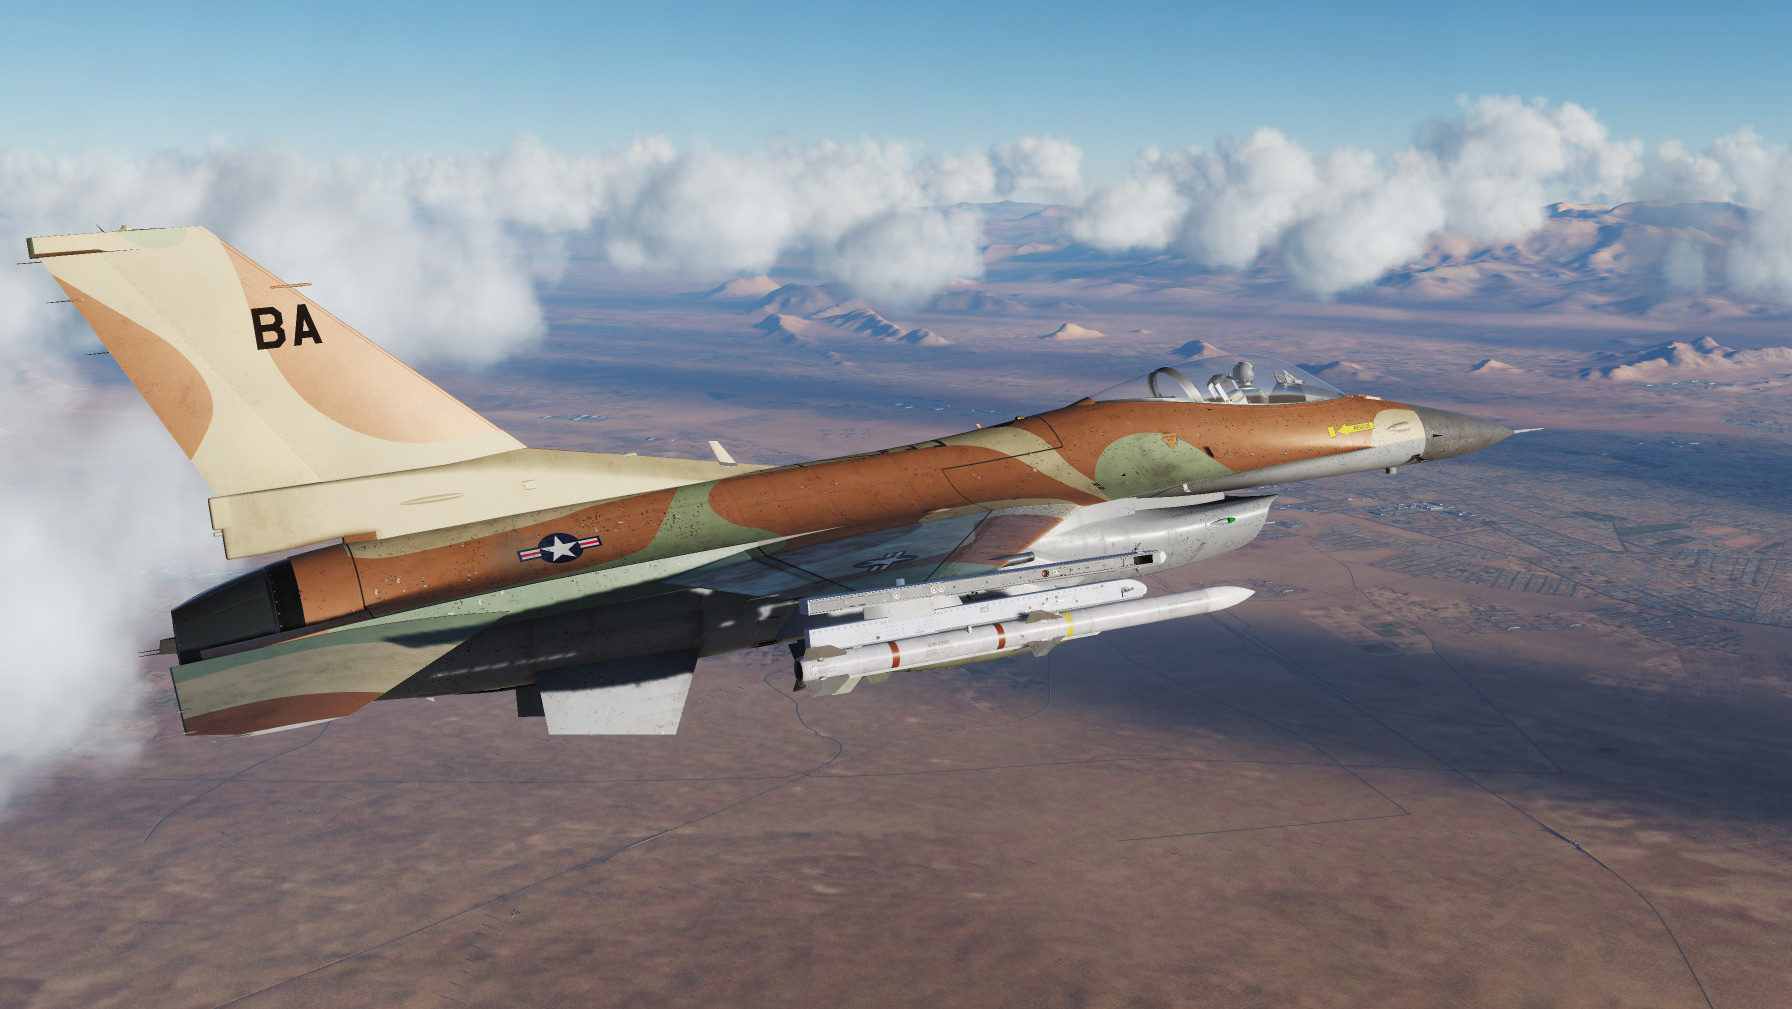 Iron Eagle F-16 - skin as seen on Chappy's and Doug's F-16